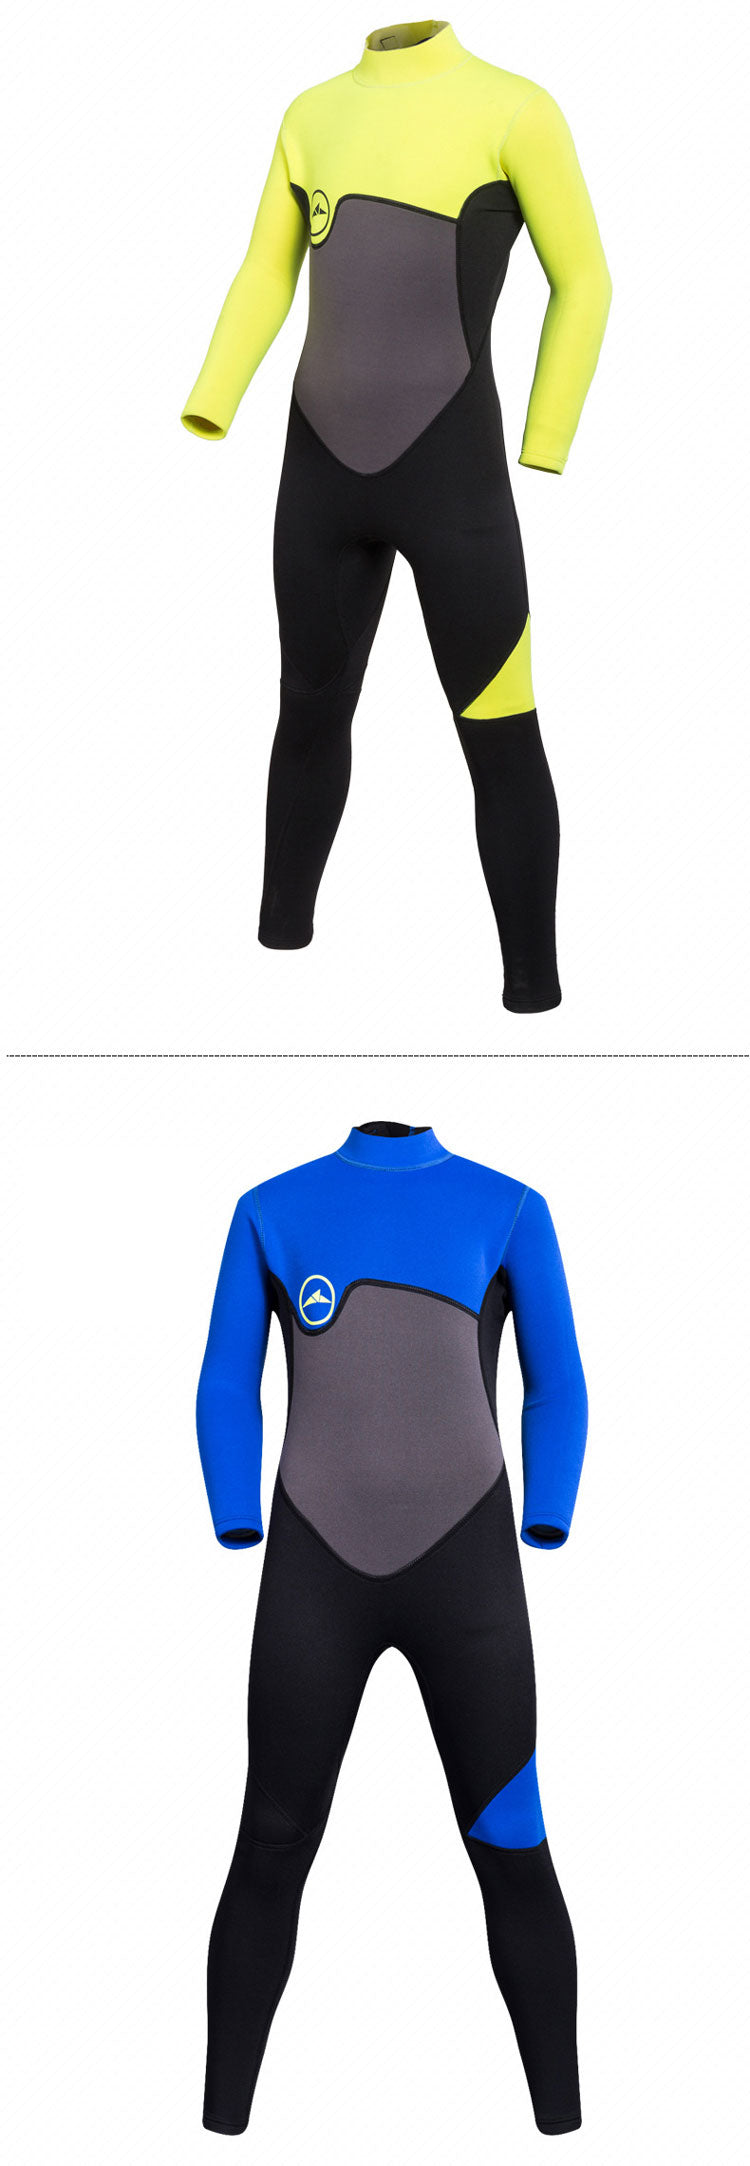 childrens wetsuits  Kids Diving Wetsuit